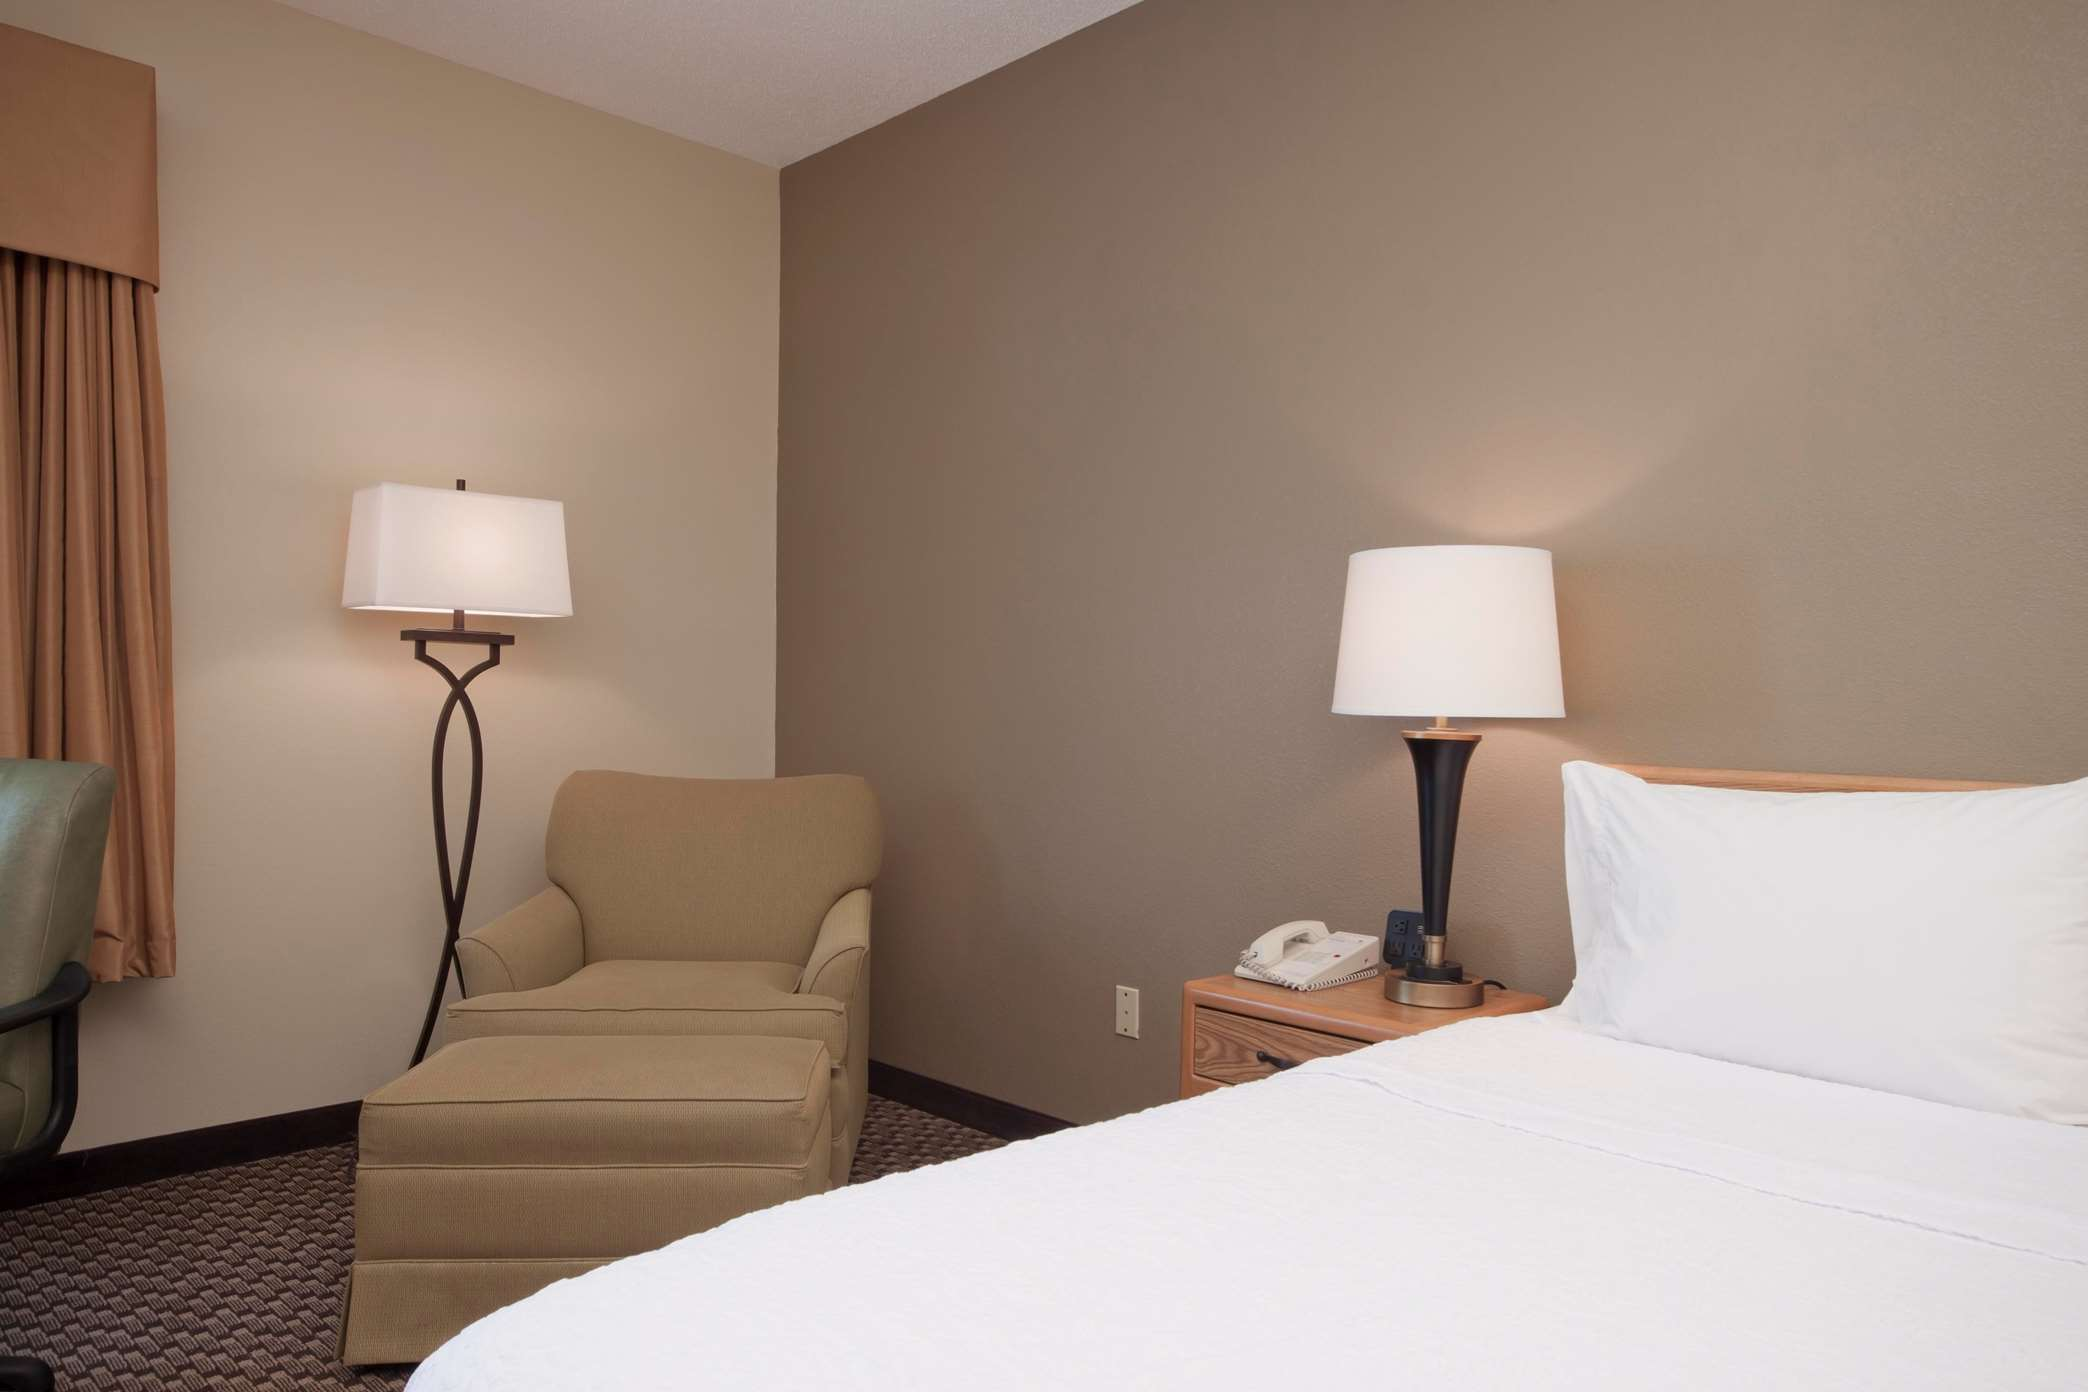 King Accissible Hotel Room